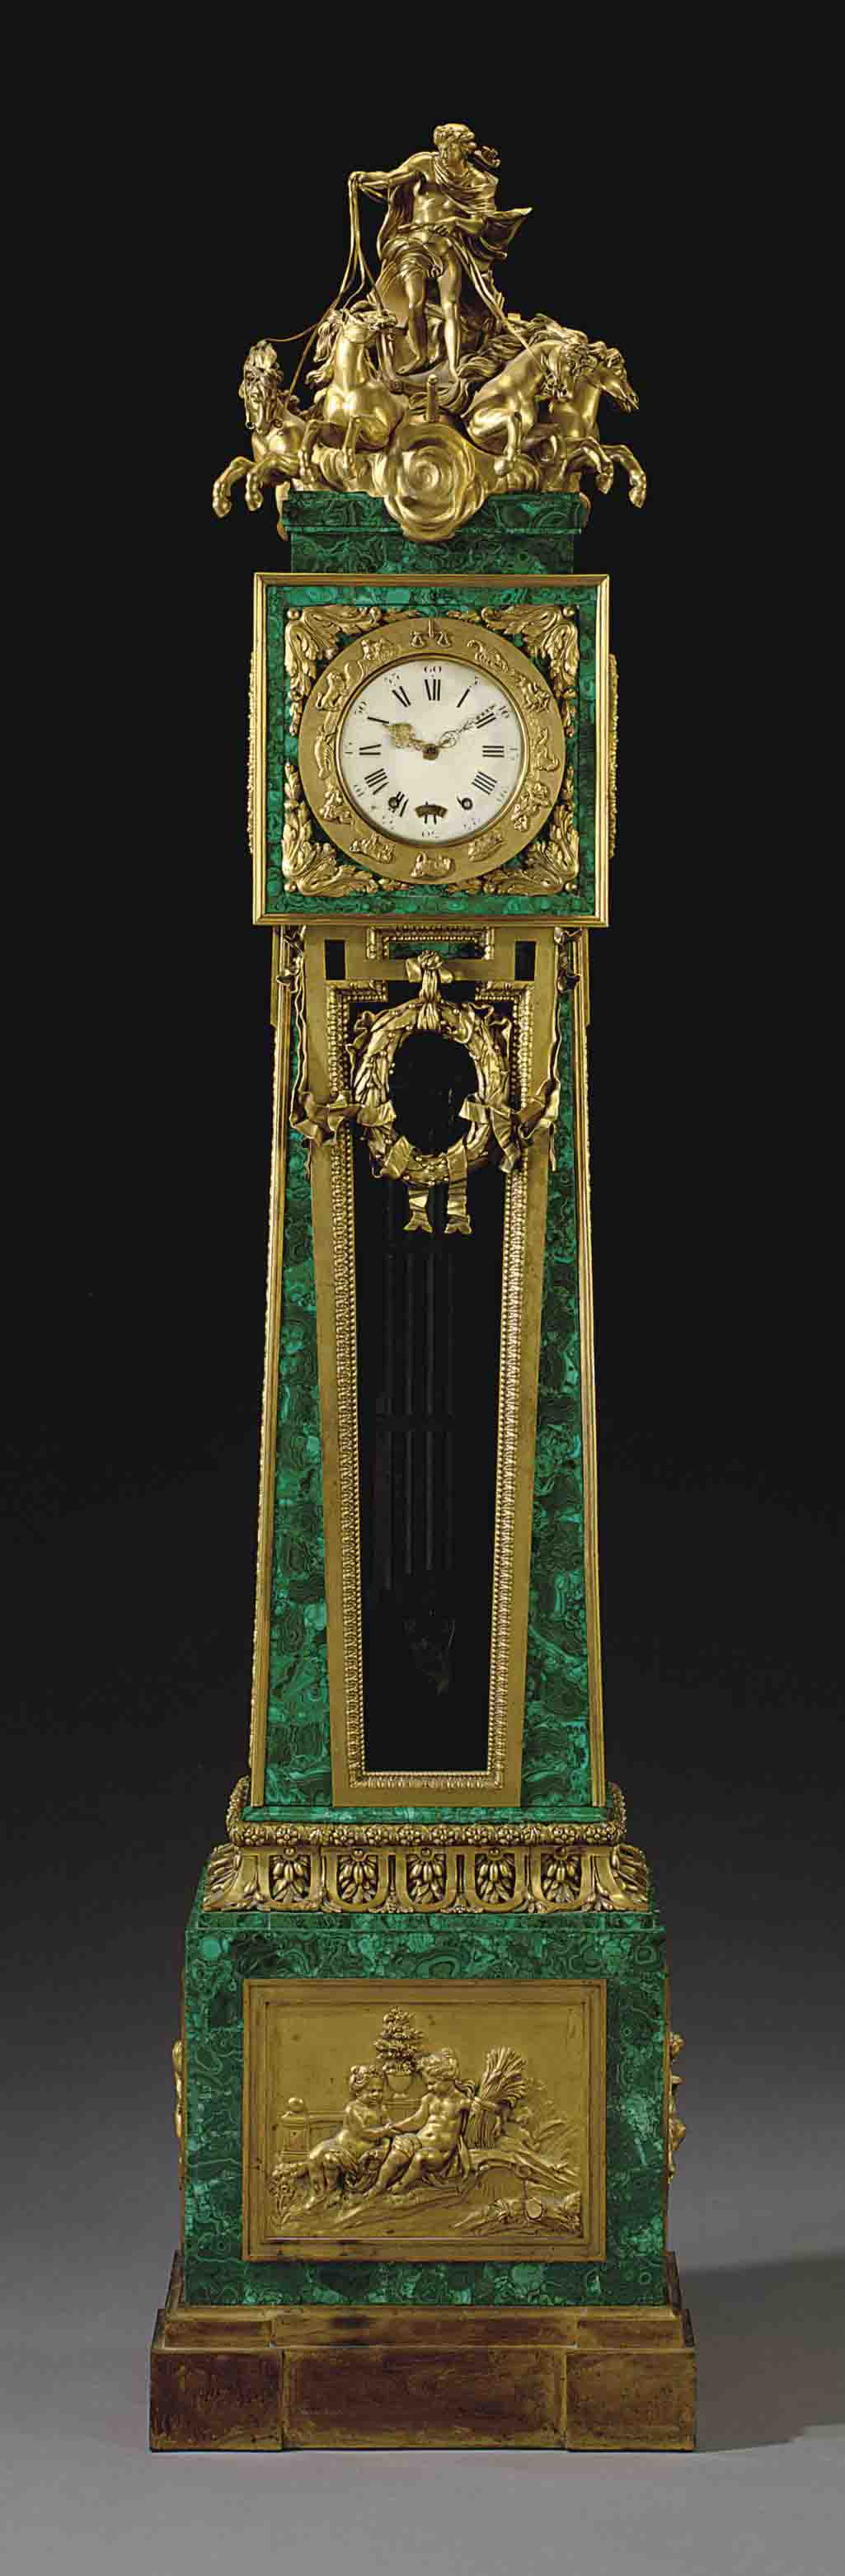 'REGULATEUR AU CHAR D'APOLLON': A FRENCH ORMOLU-MOUNTED AND MALACHITE-VENEERED REGULATEUR